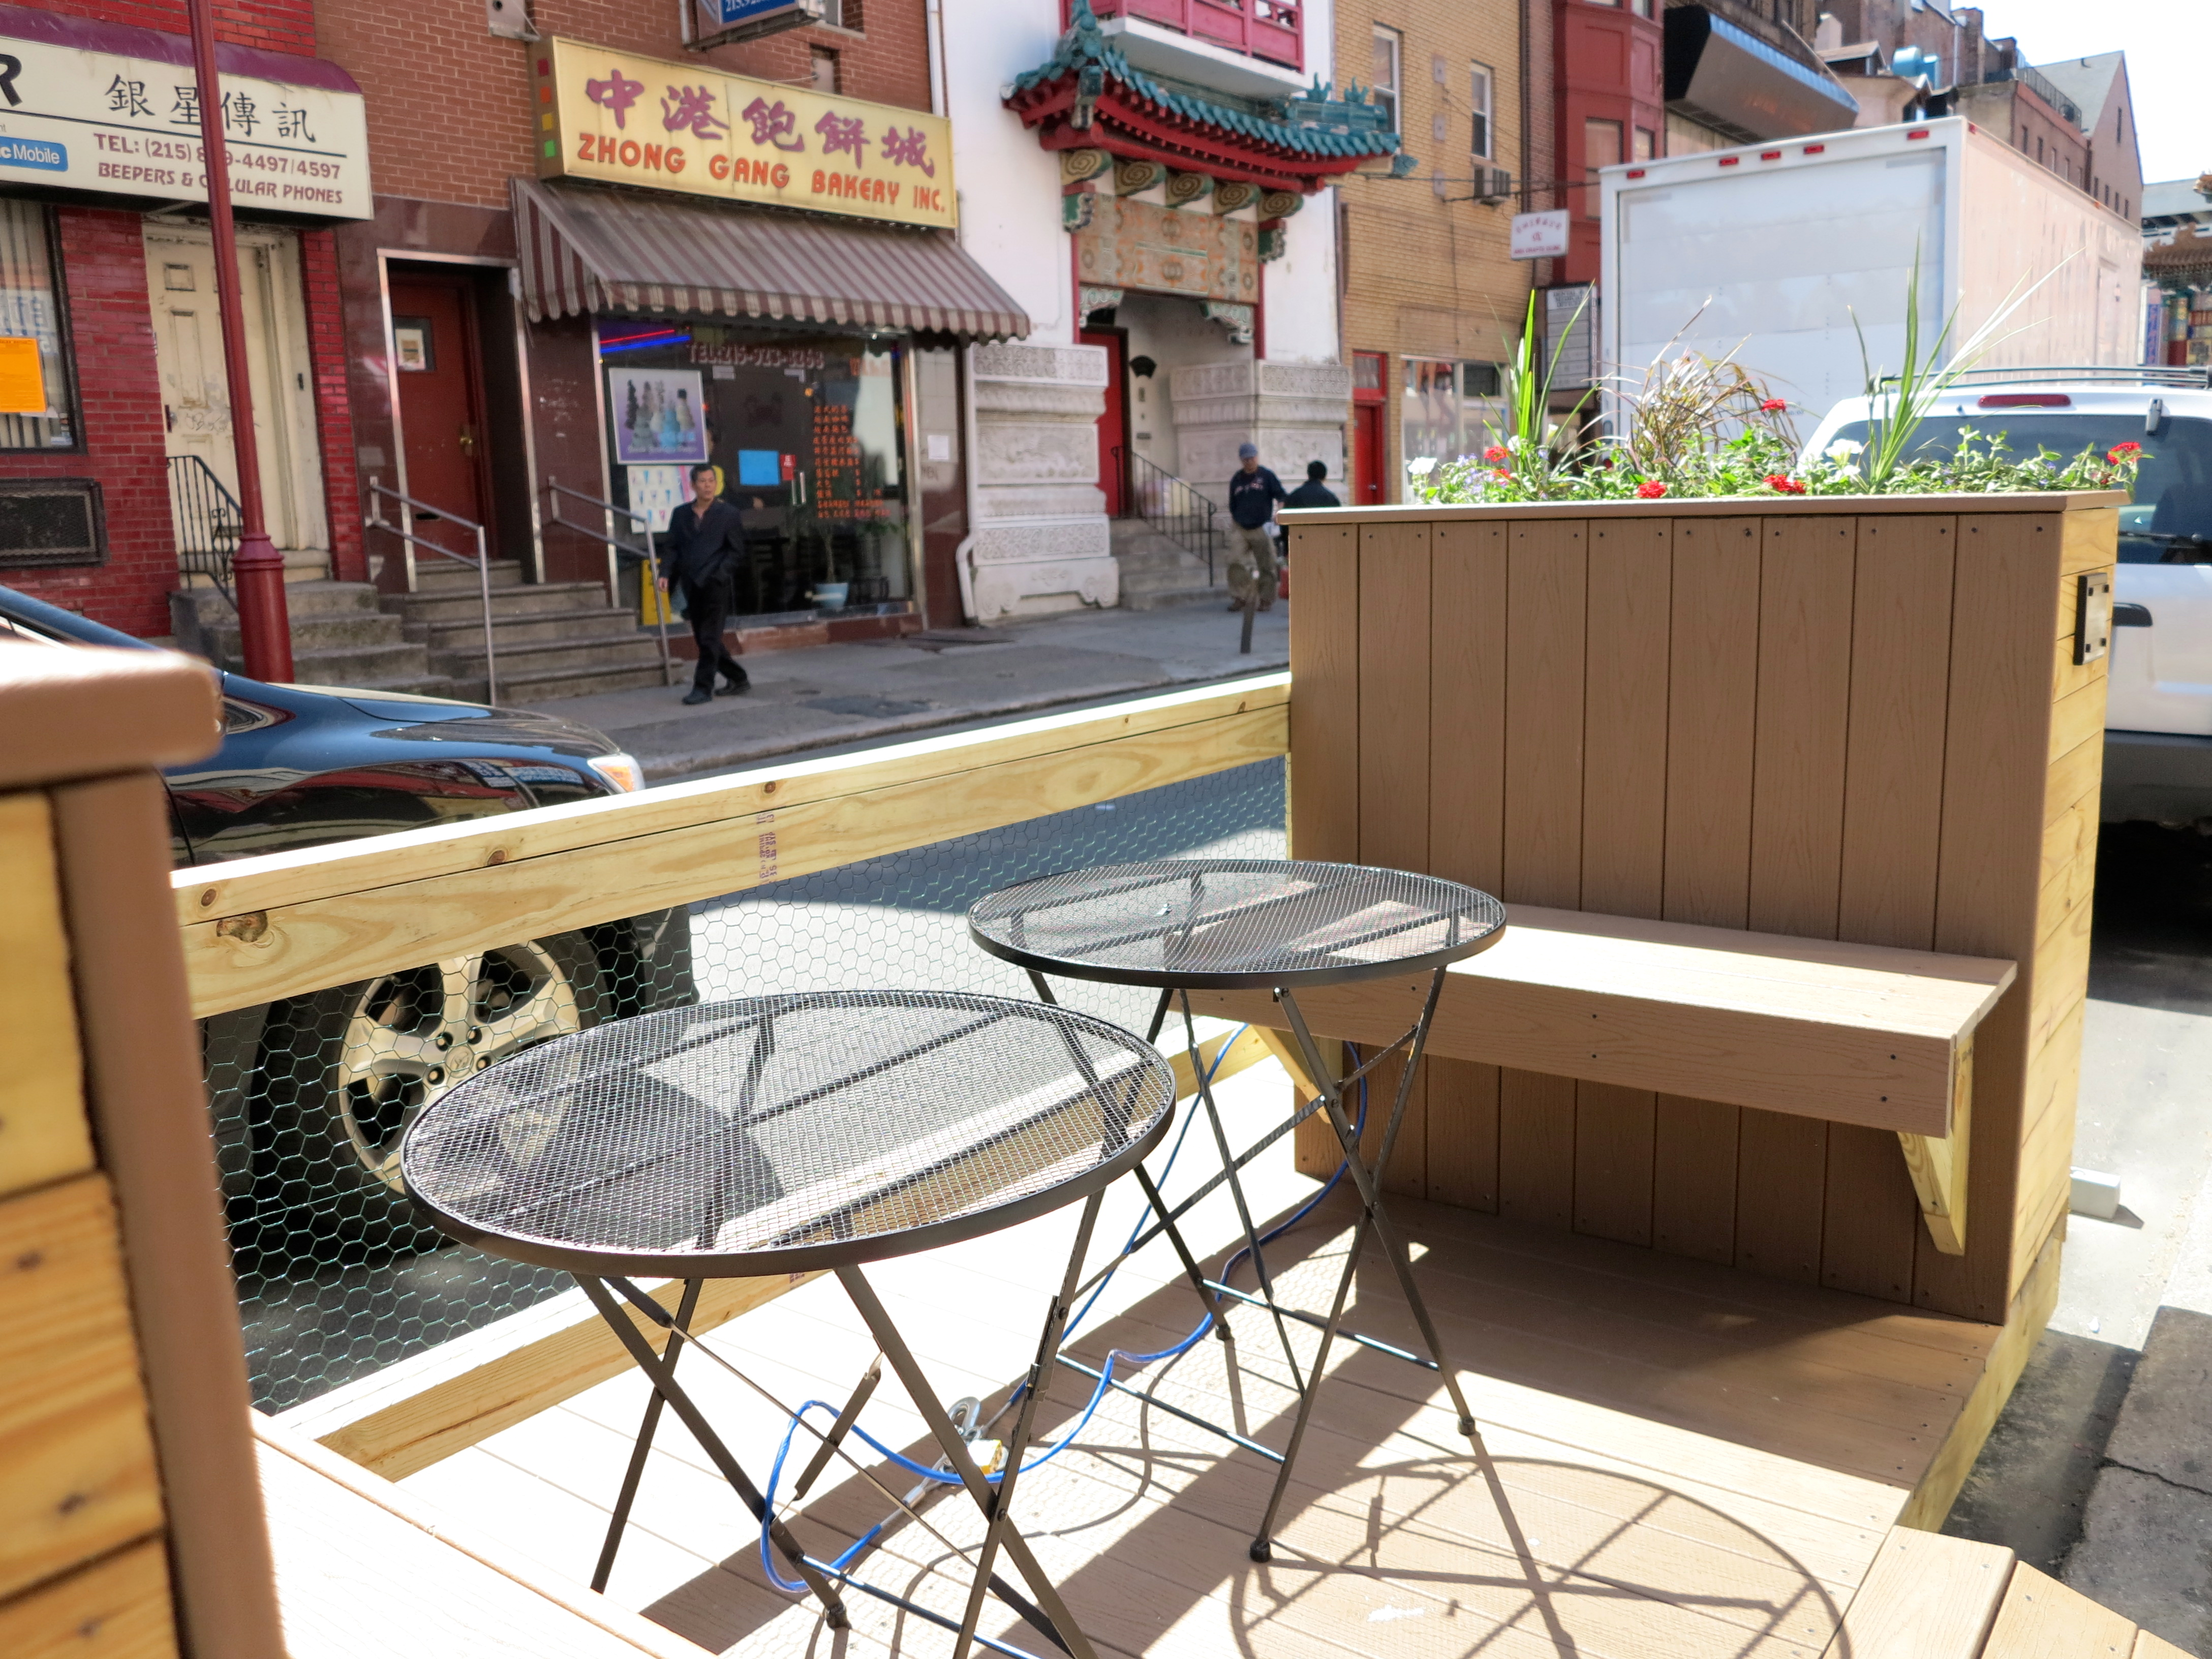 The parklet features built-in benches and two tables.